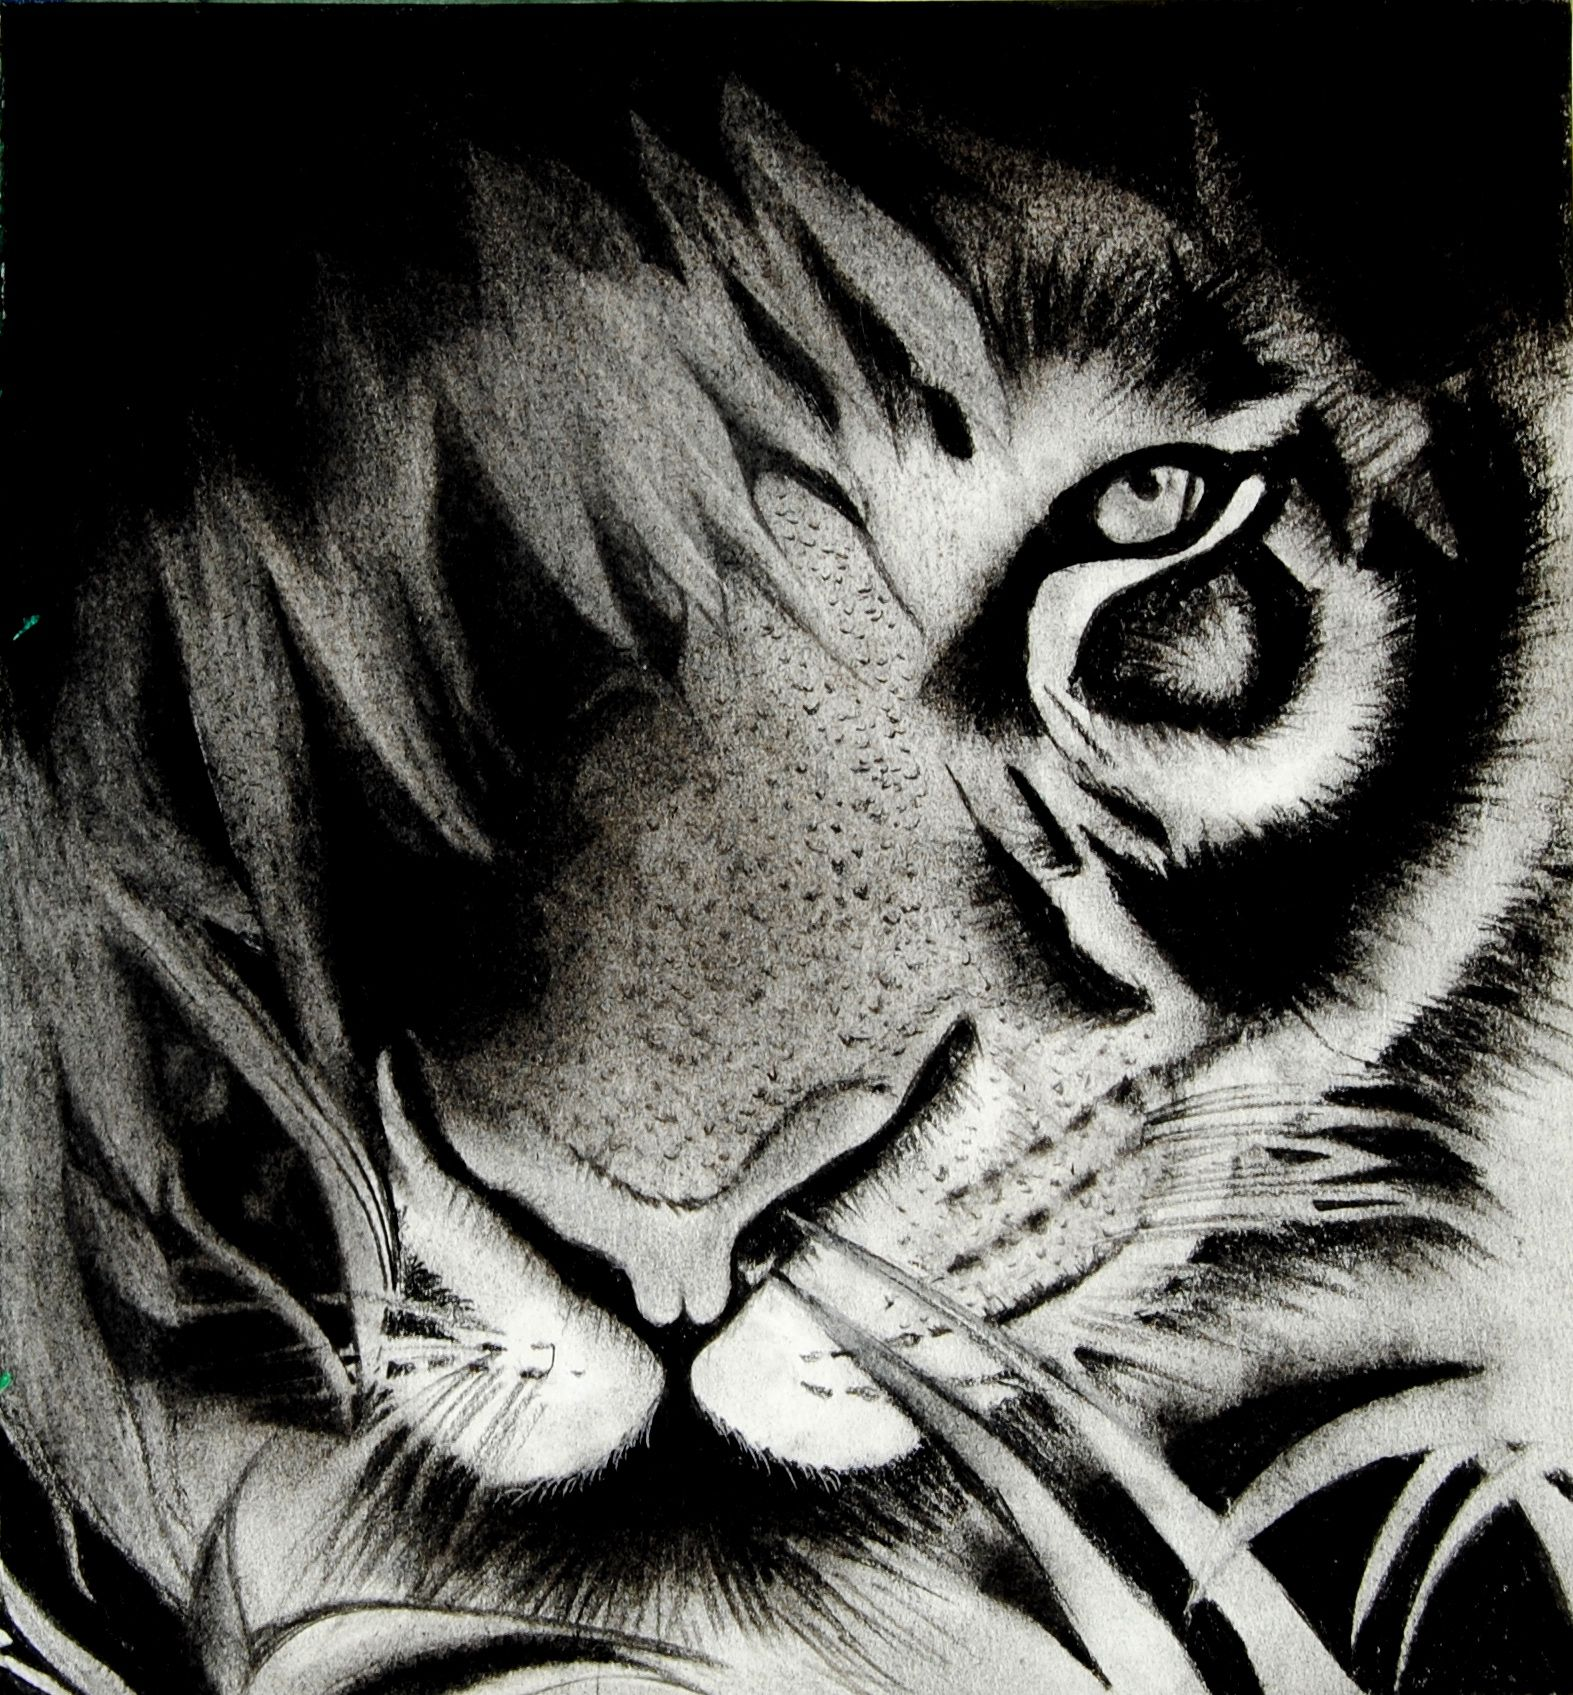 Royal Bengal Tiger sketch. Charcoal drawing of a Bengal